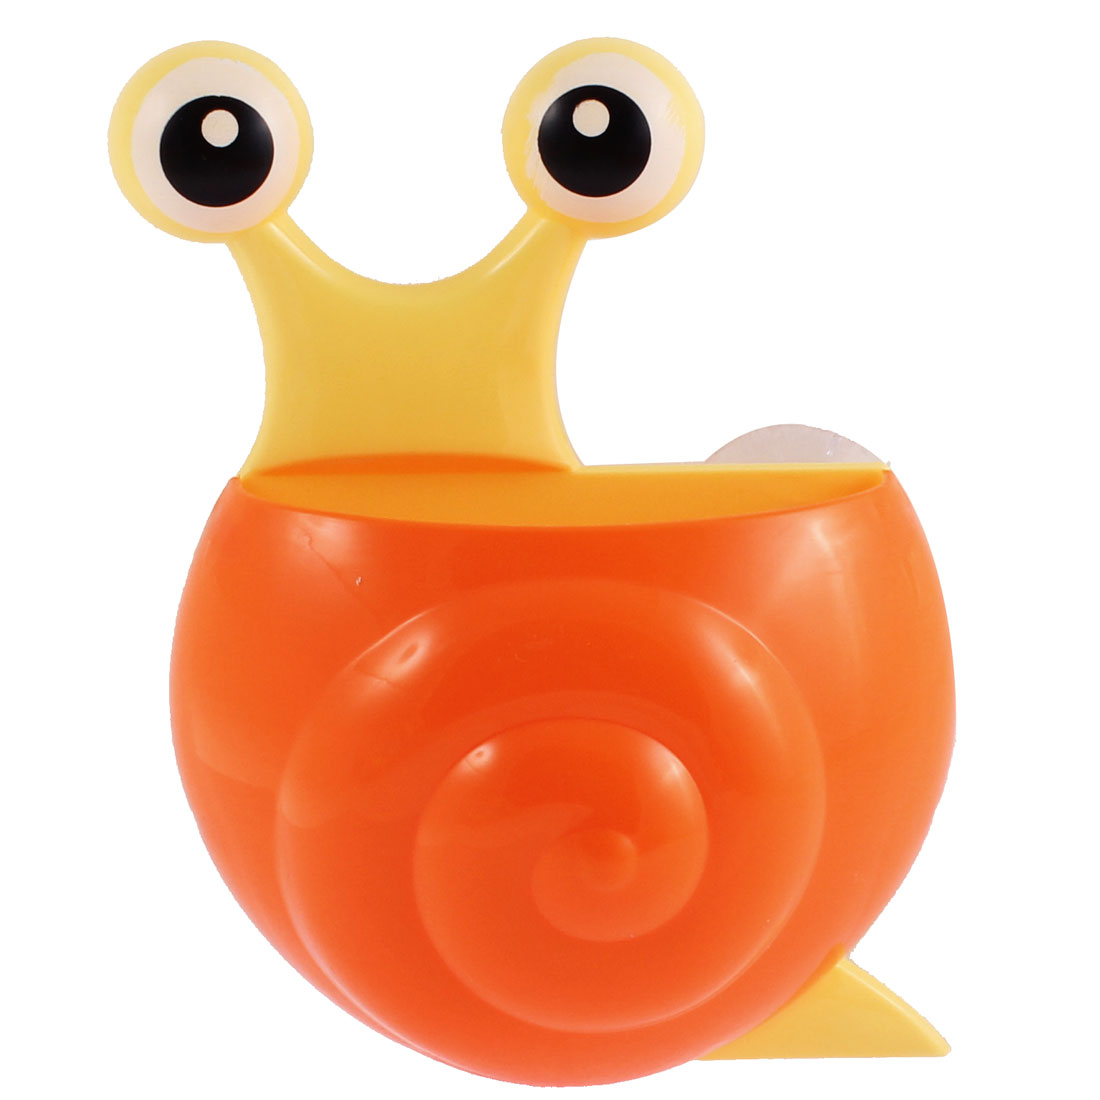 Uxcell Household Plastic Snail Design Suction Cup Toothbrush Holder Orange